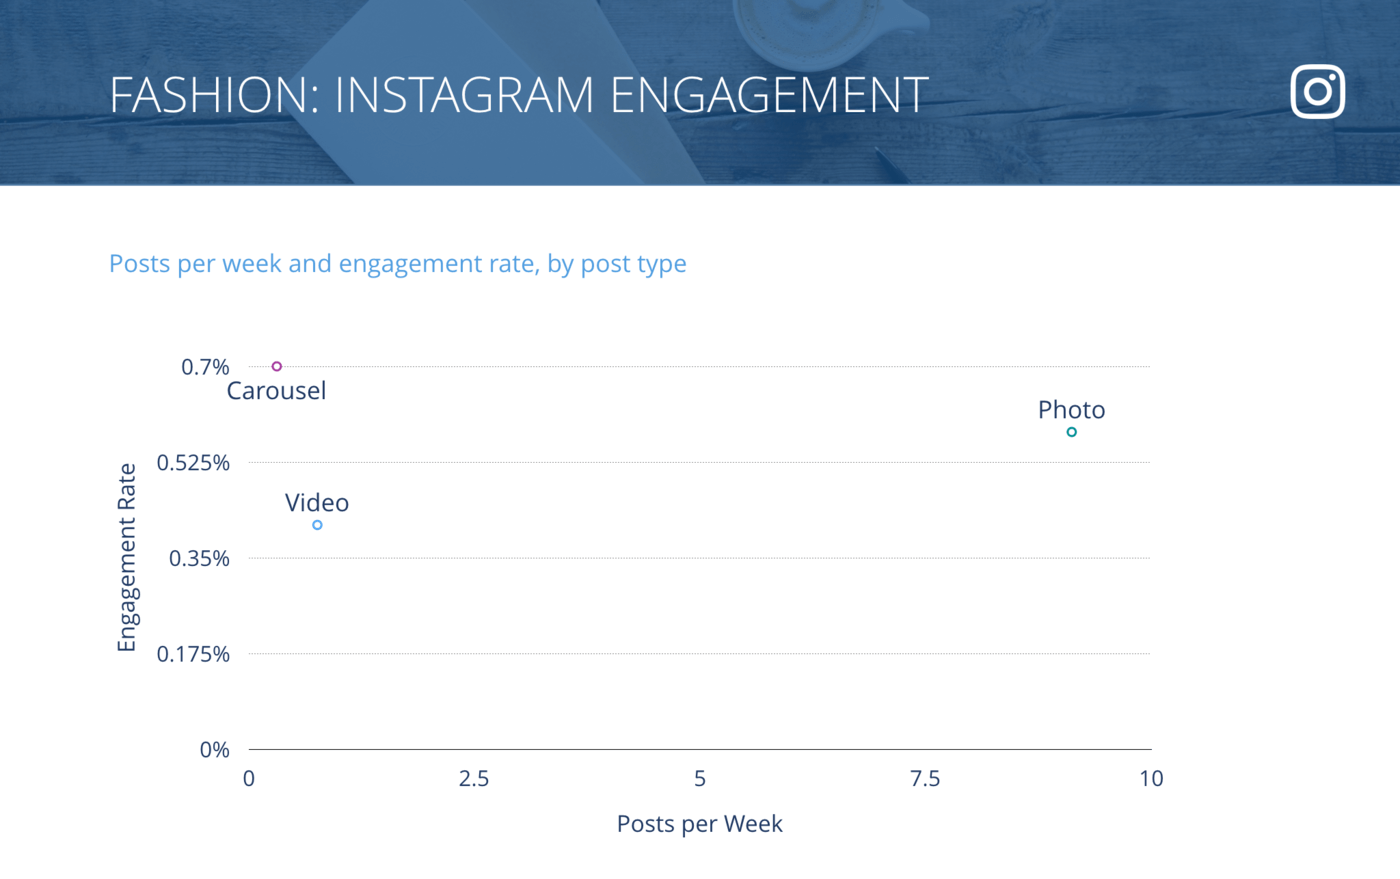 slide for Instagram Posts per Week vs. Engagement Rate per Post, Fashion Brands